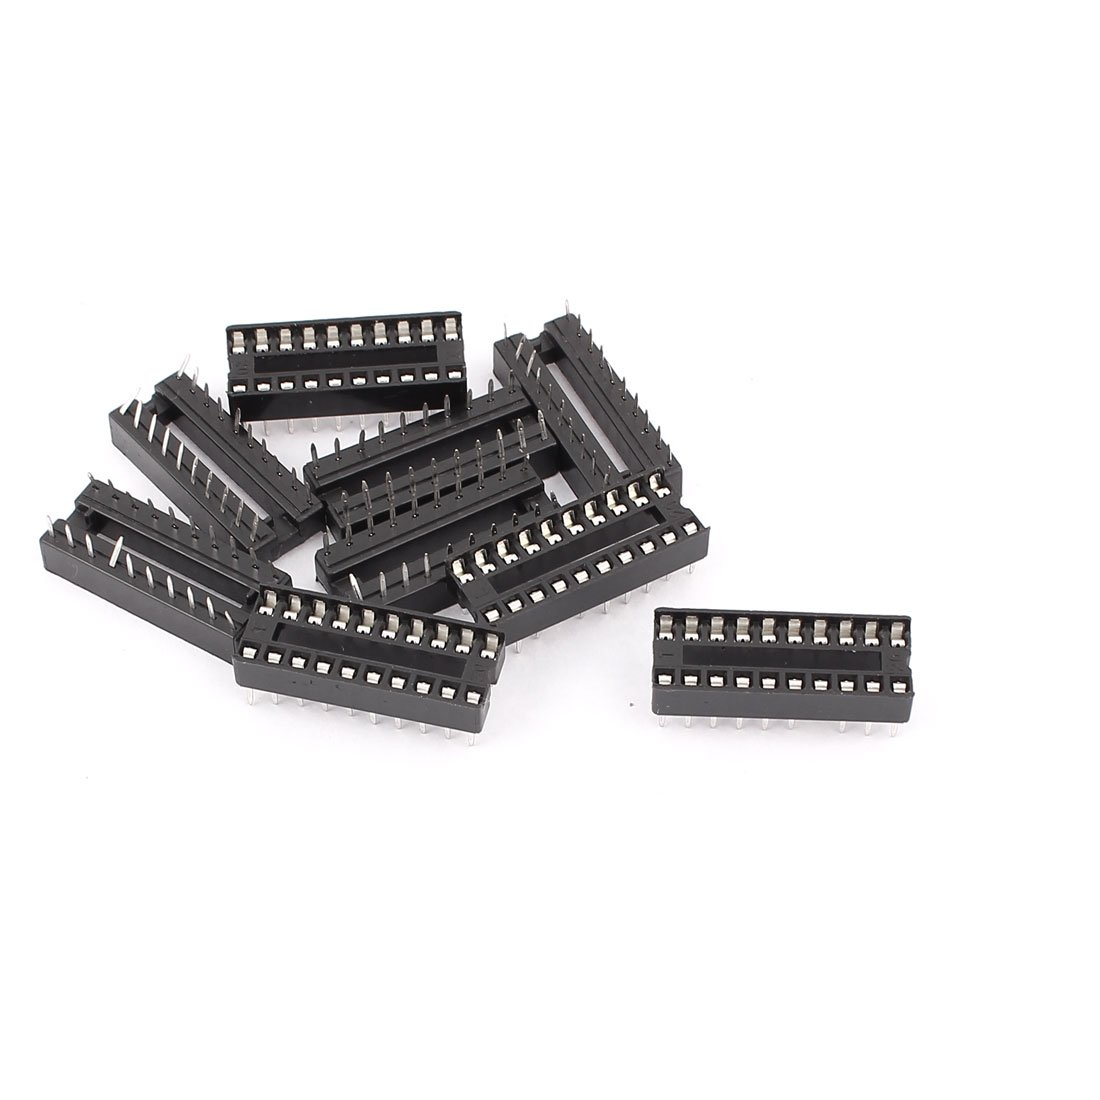 Uxcell 2.54 mm Pitch PCB Solder Type 20 Pins DIP IC Chip Sockets Adapter, 8 Pieces a15092300ux0125